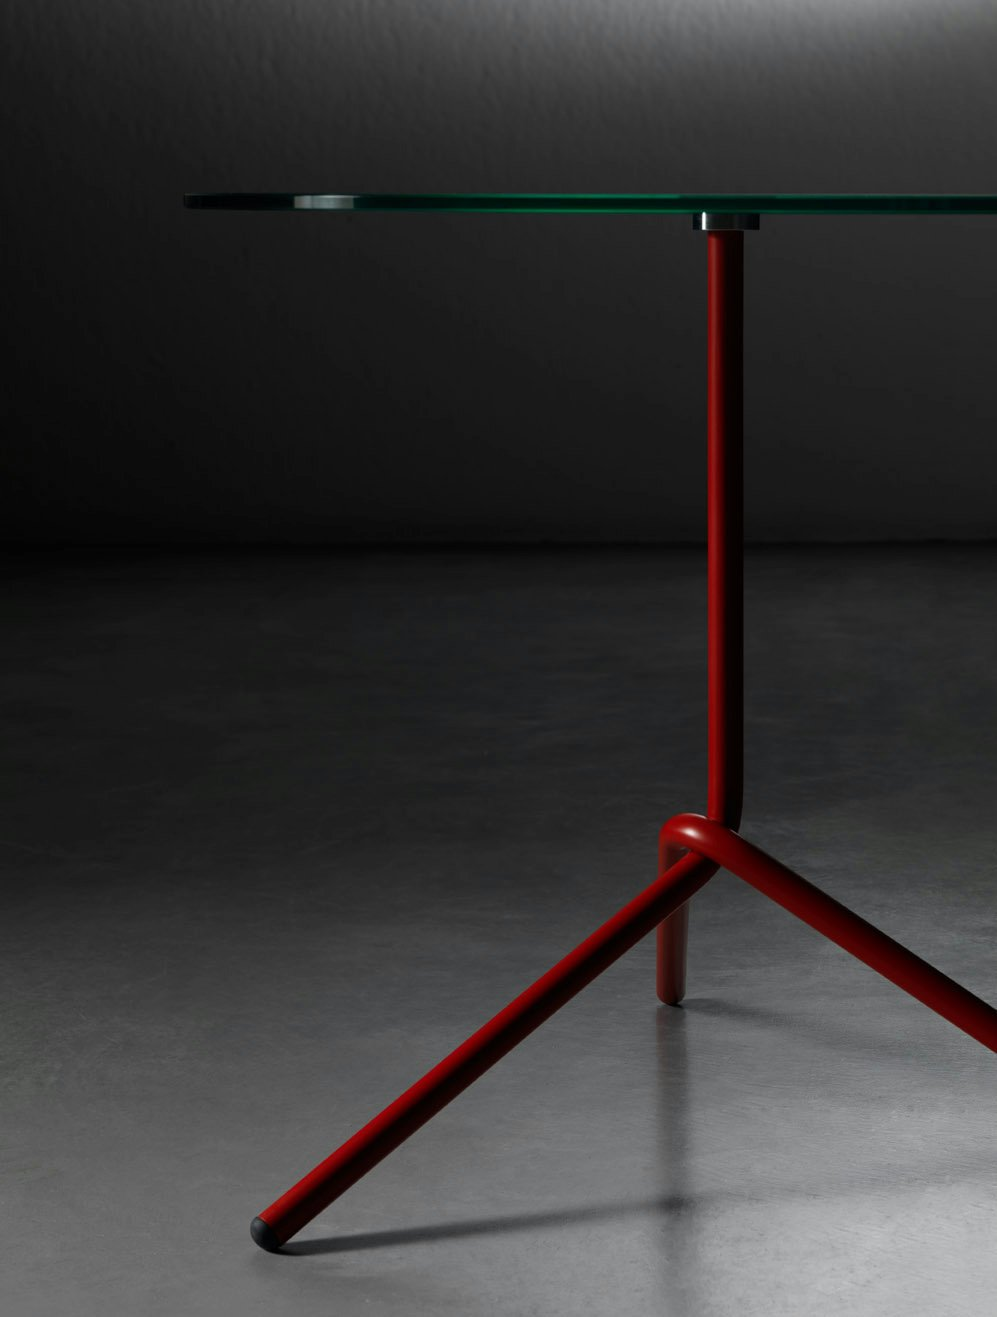 Table basse ronde en verre tremp fil by miniforms design paolo cappello - Table ronde verre trempe ...